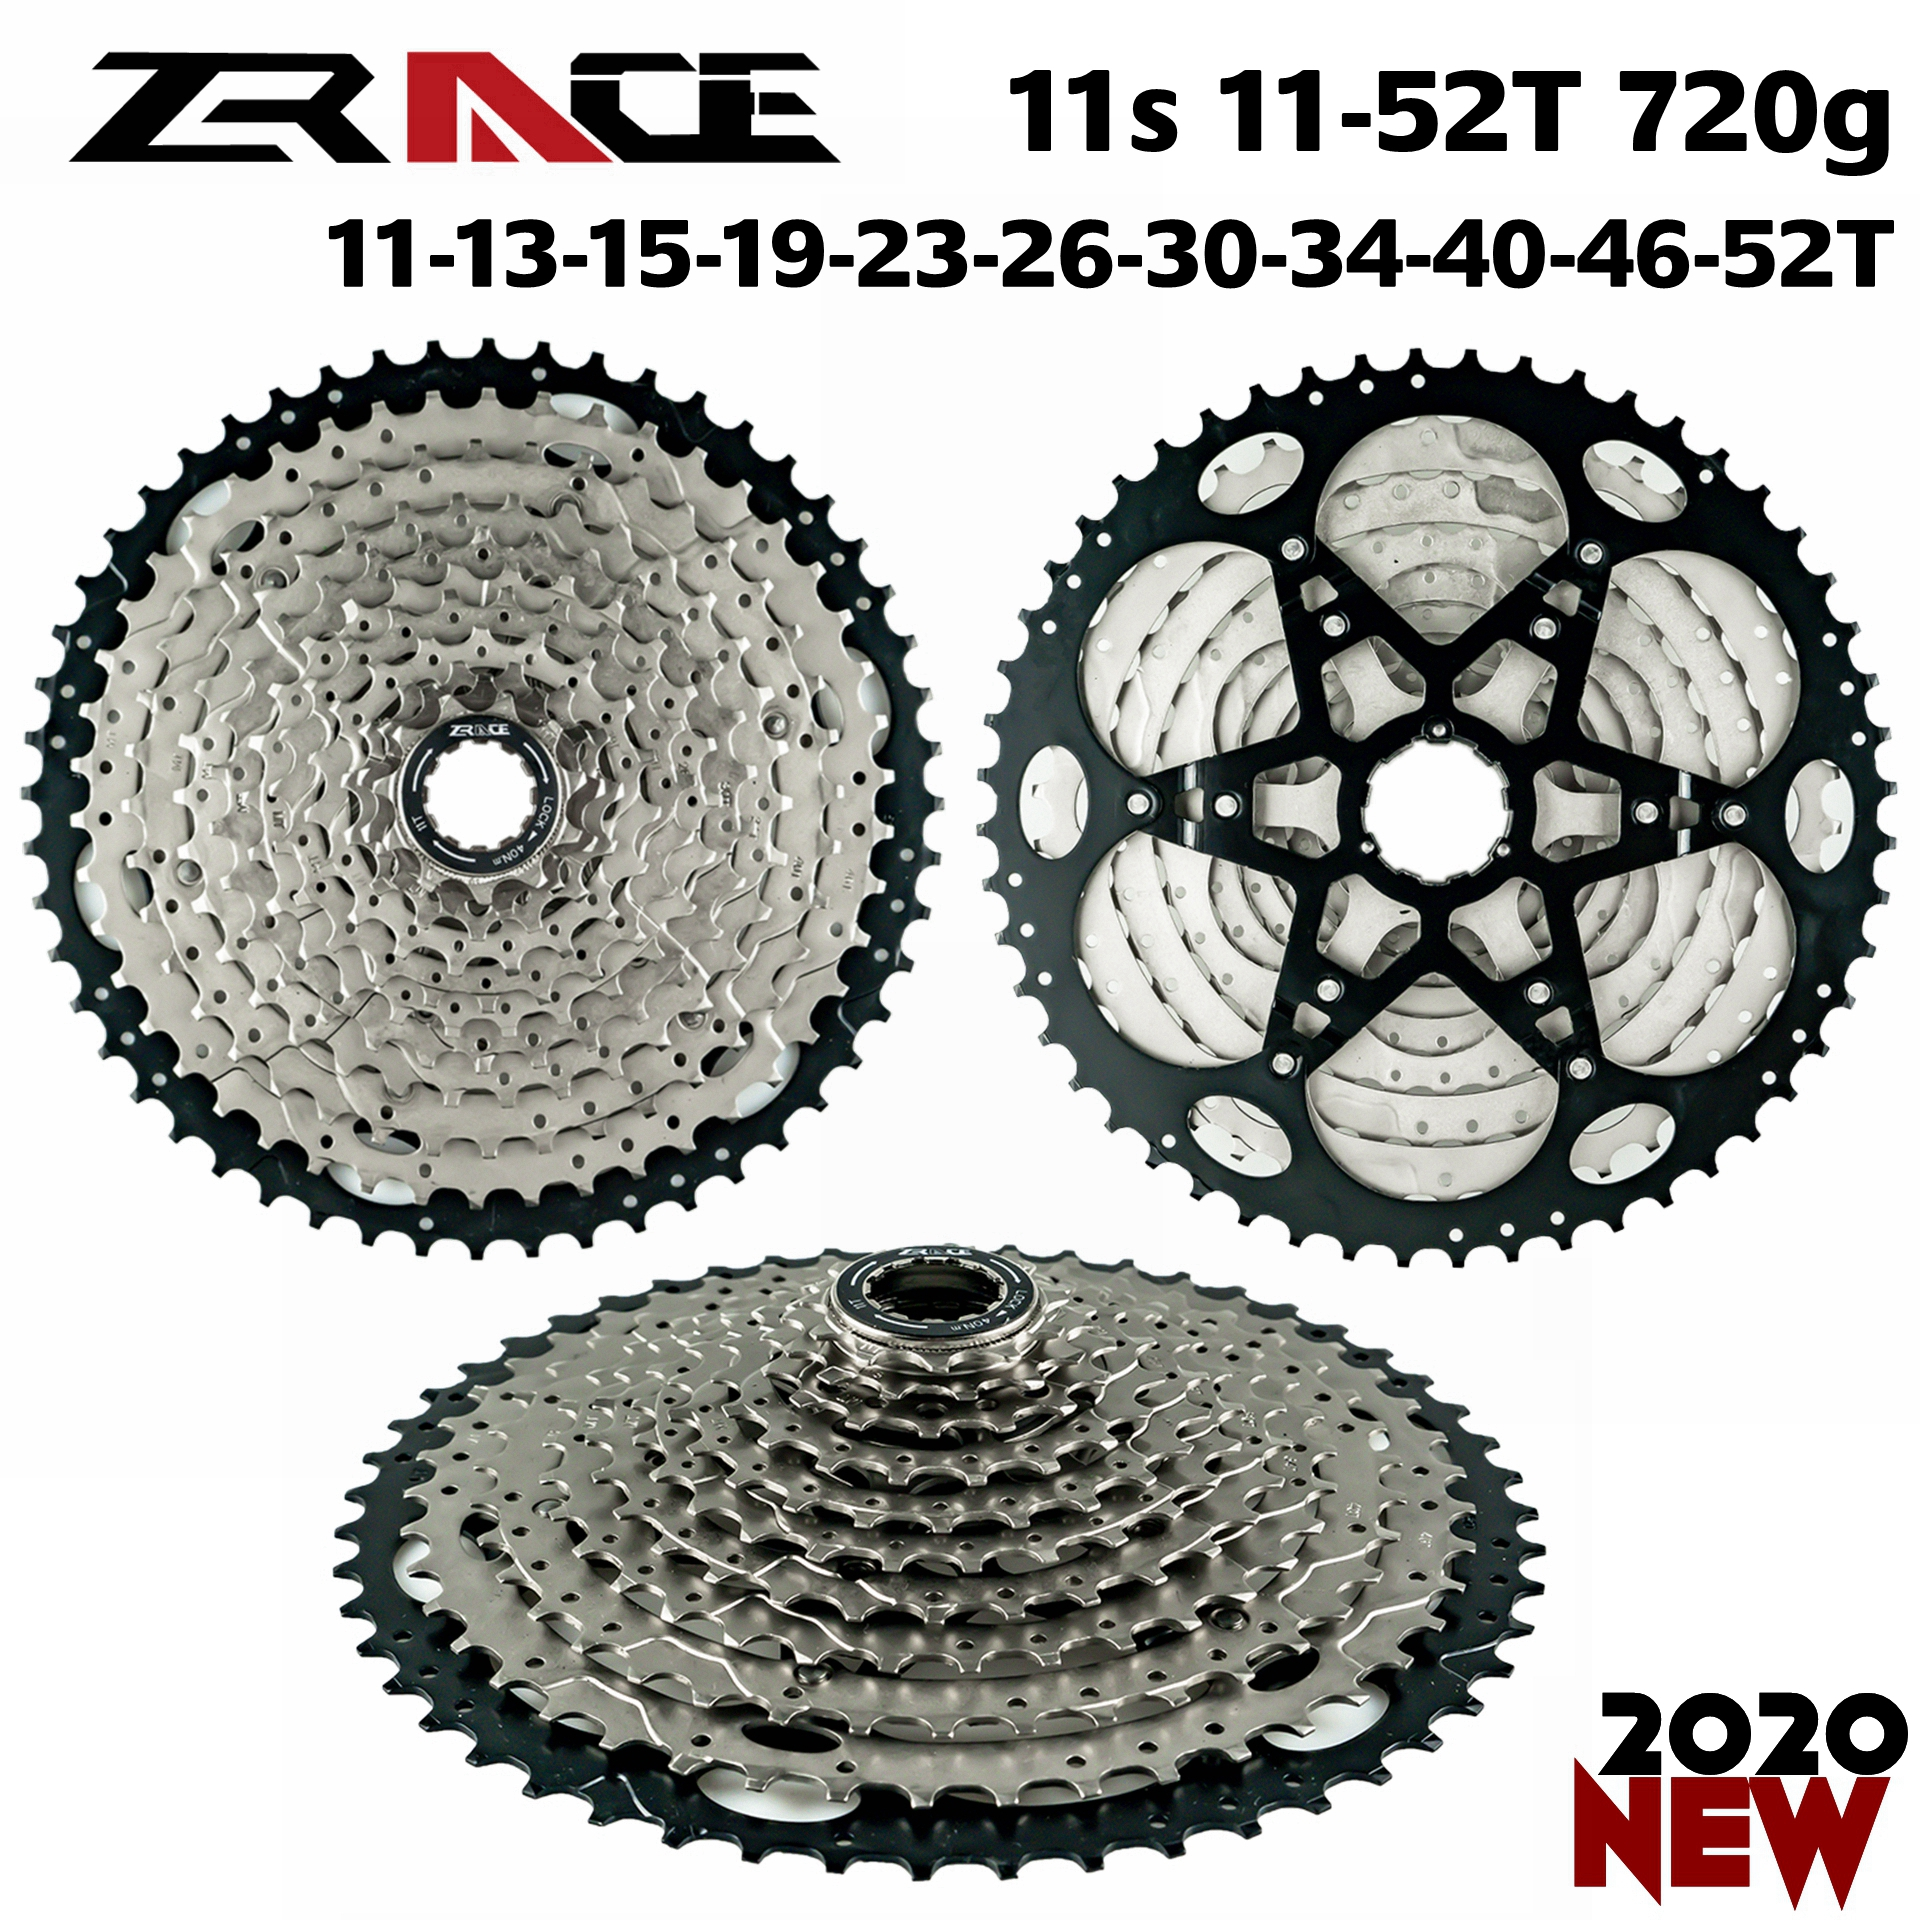 ZRACE Bicycle Cassette <font><b>11</b></font> Speed MTB bike freewheel <font><b>11</b></font>-<font><b>46T</b></font> / <font><b>11</b></font>-50T / <font><b>11</b></font>-52T, Free a adapter image